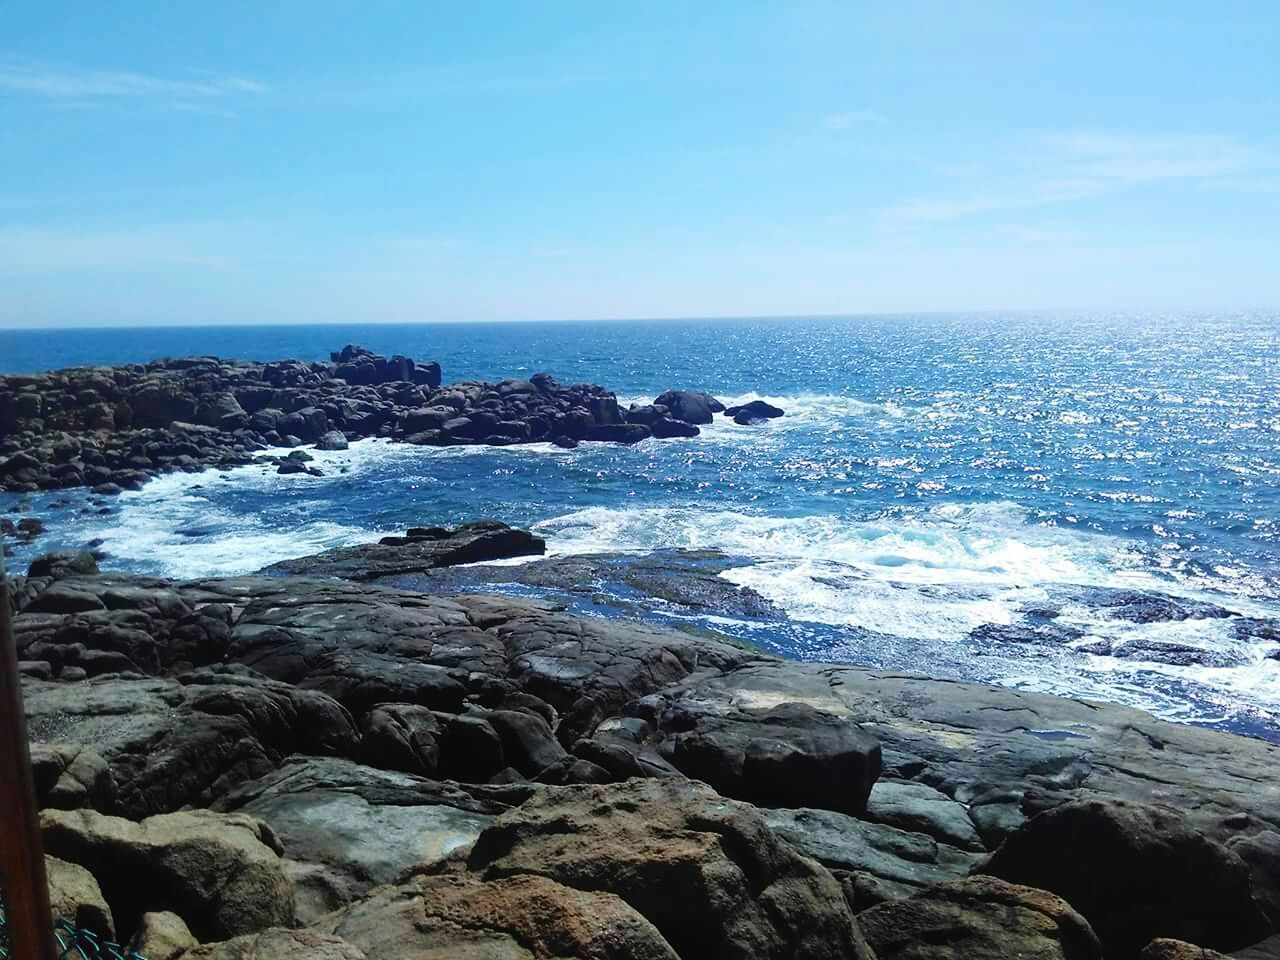 sea, horizon over water, nature, beauty in nature, water, scenics, rock - object, tranquil scene, outdoors, sky, tranquility, blue, no people, day, clear sky, beach